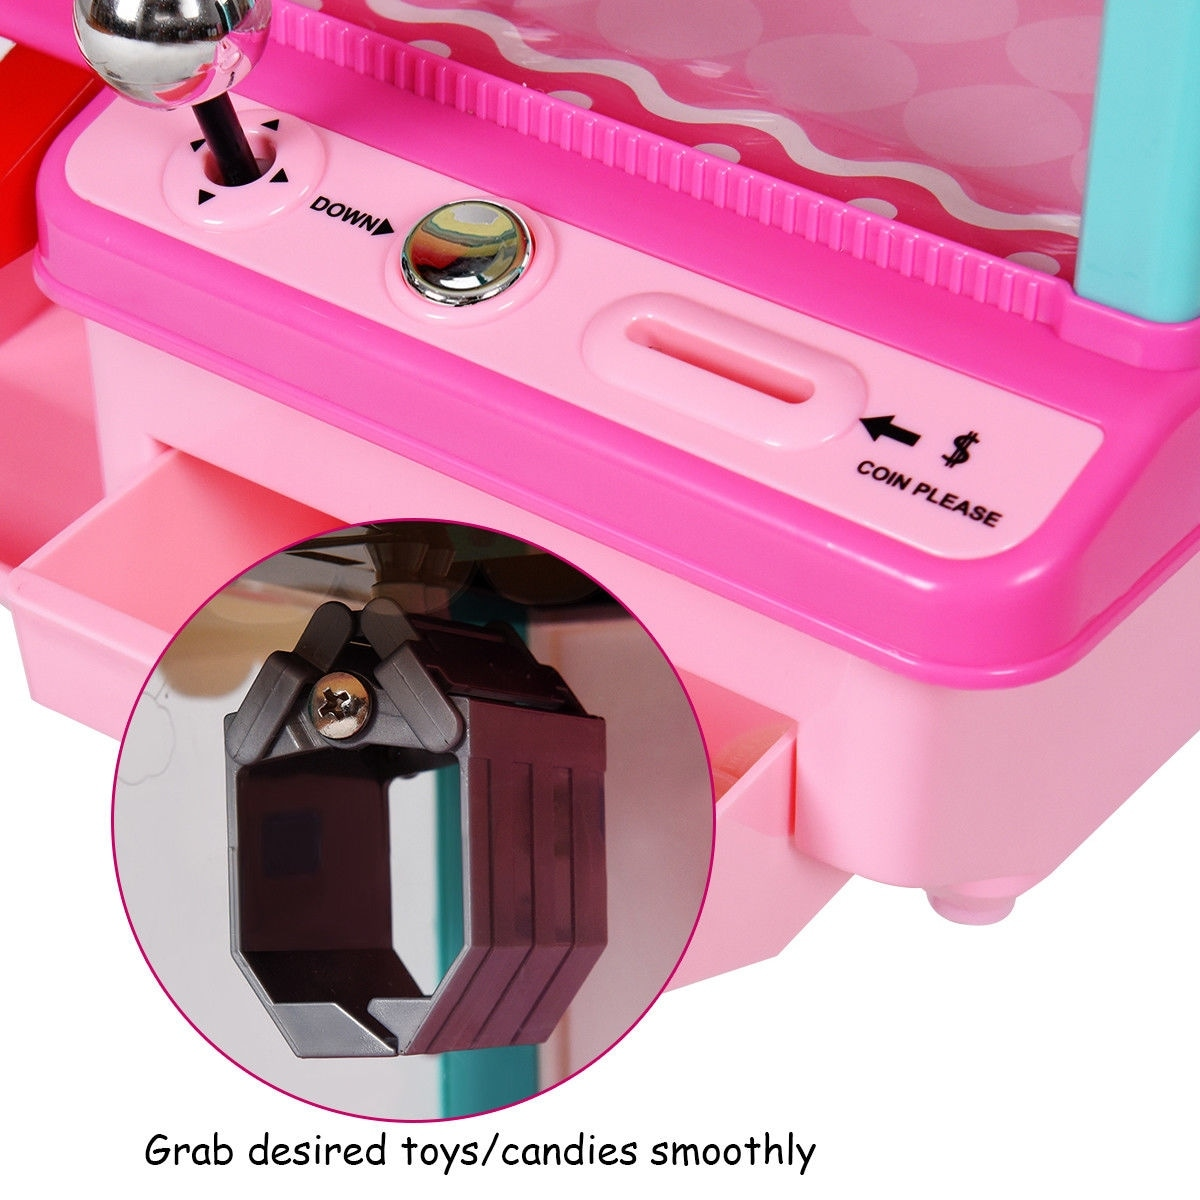 Costway Kids Electronic Claw Toy Grabber Machine Home Arcade w/ Lights &  Music & Coins - Pink